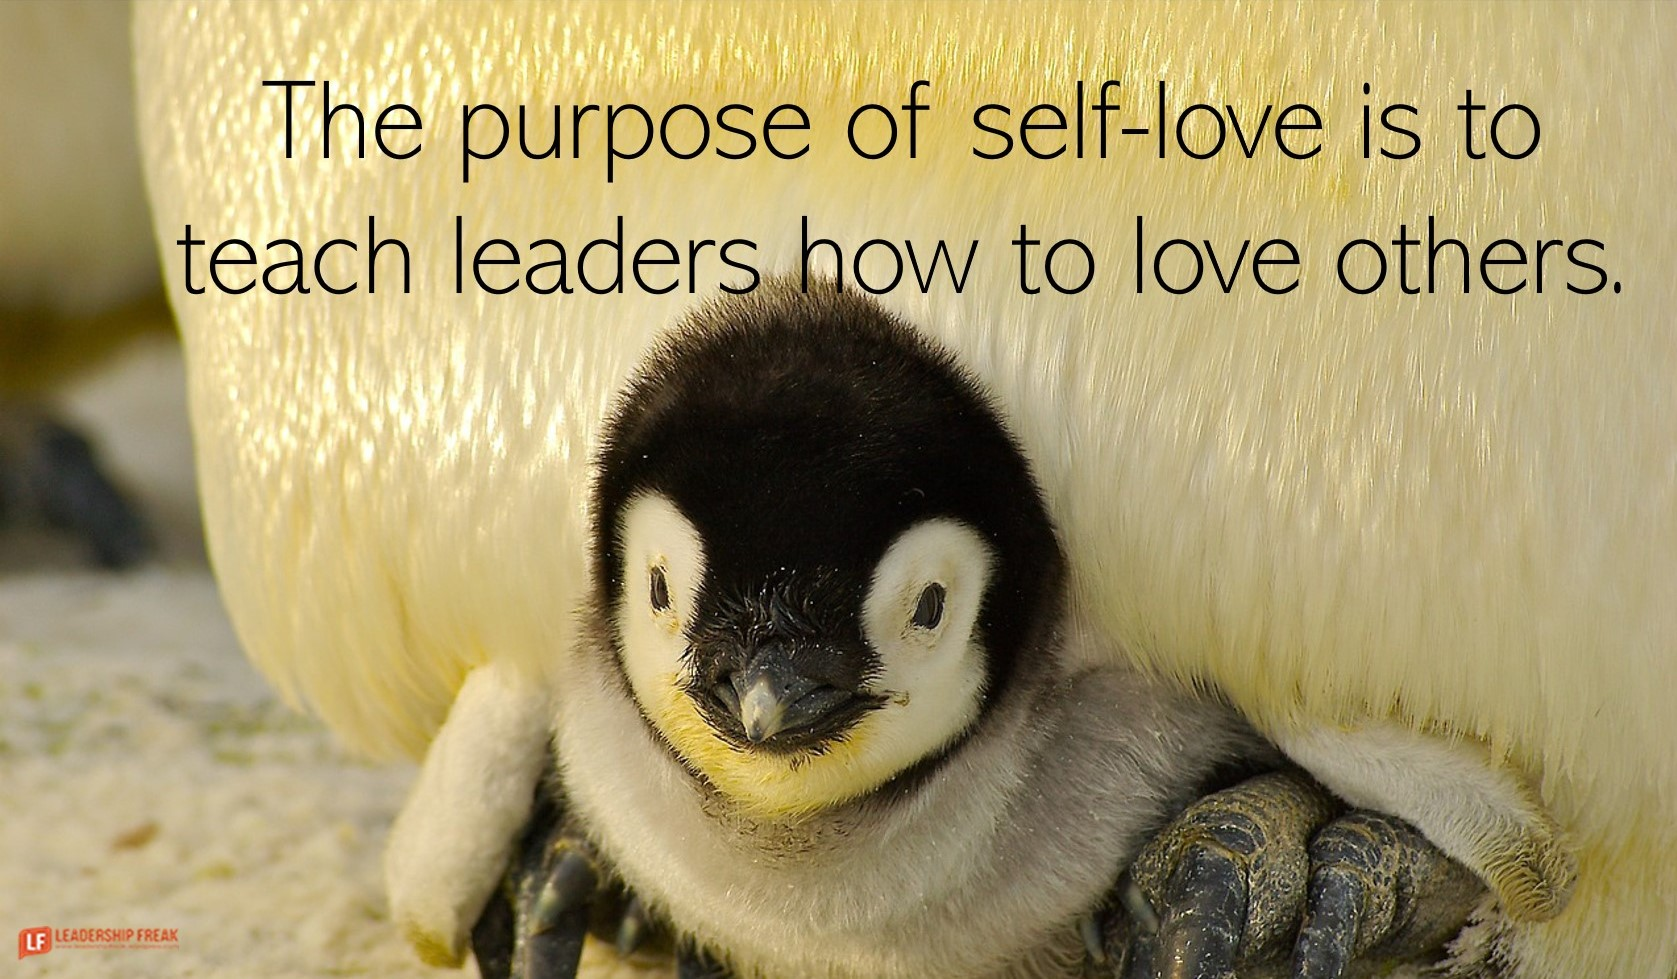 Baby penguin.  The purpose of self-love is to teach leaders how to love others.